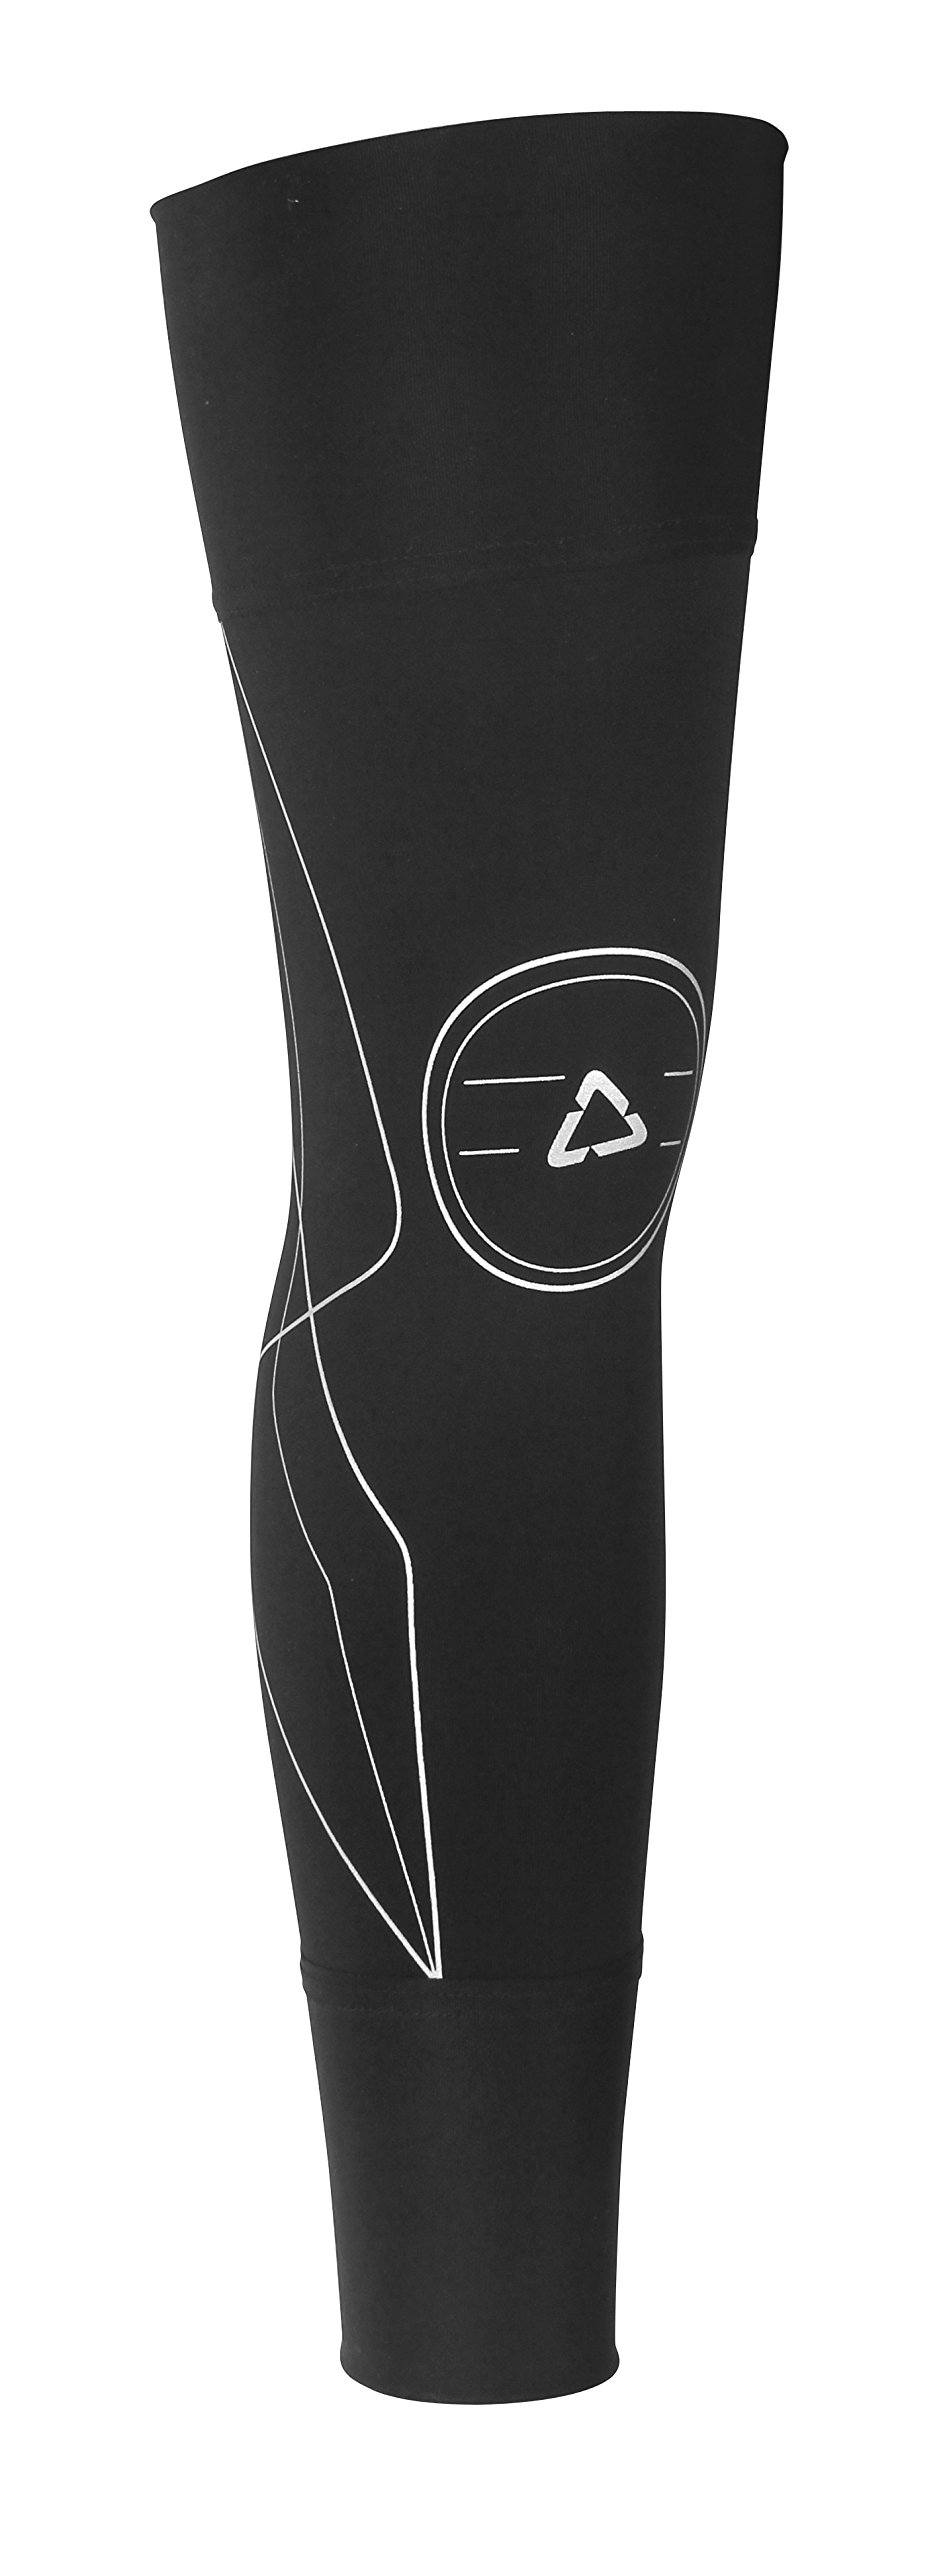 Leatt Knee Brace Sleeve (Black, Large/X-Large) - Pair